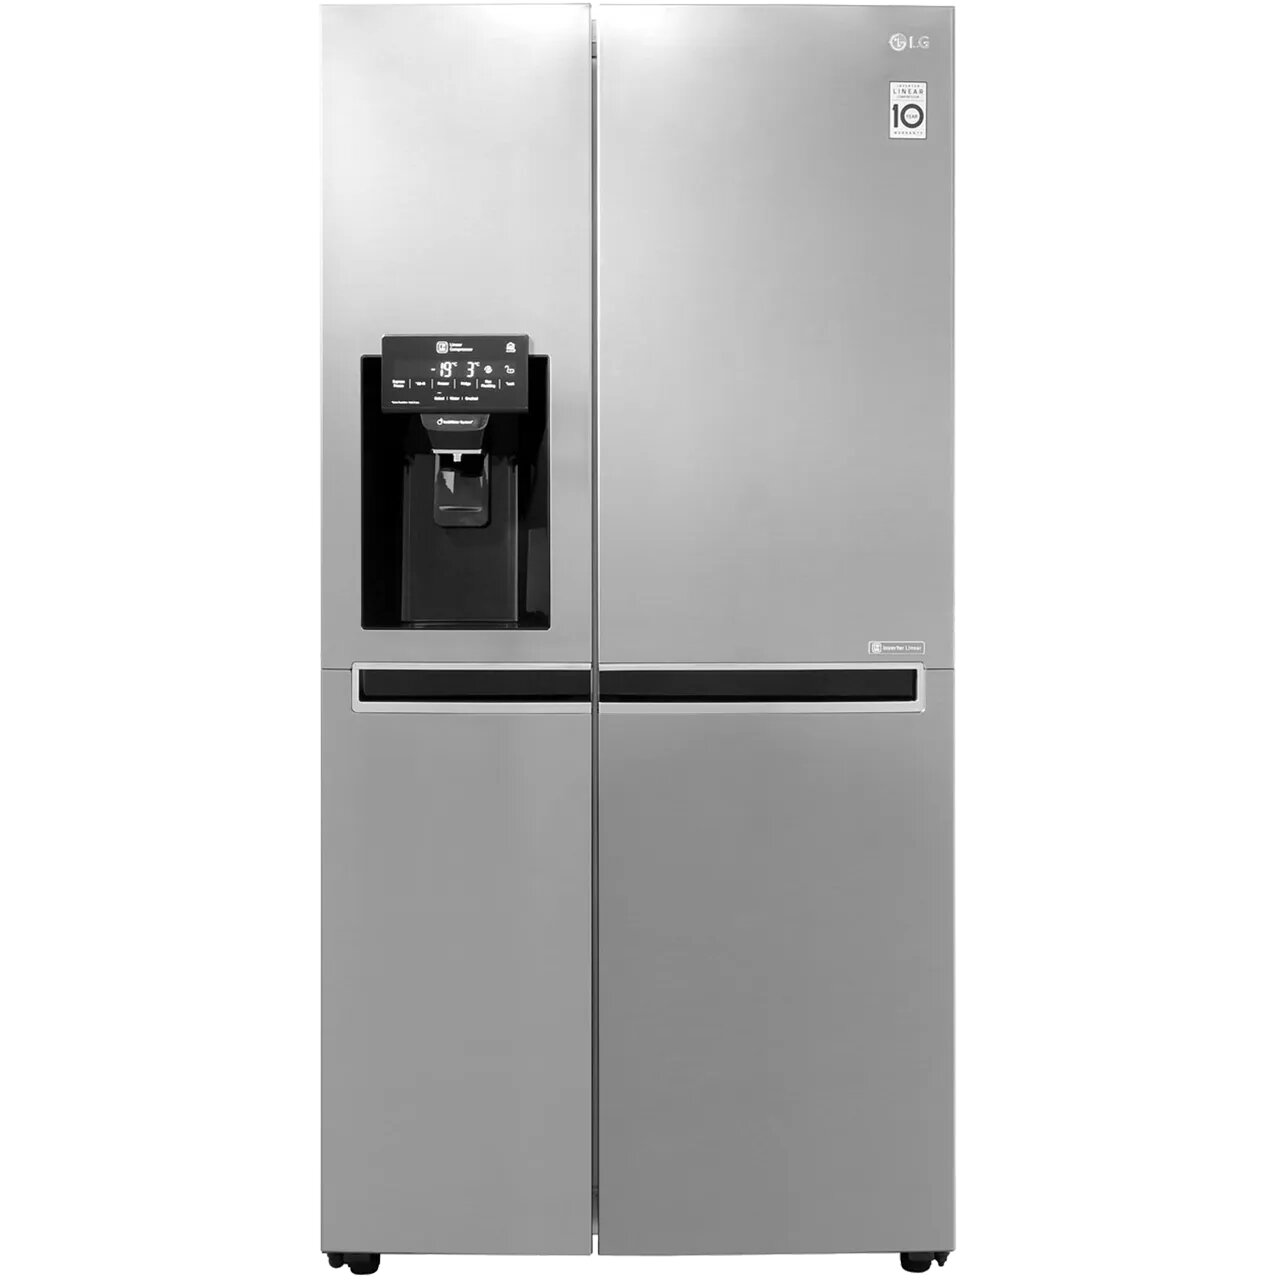 LG GSL761PZXV Wifi Connected American Fridge Freezer - Stainless Steel